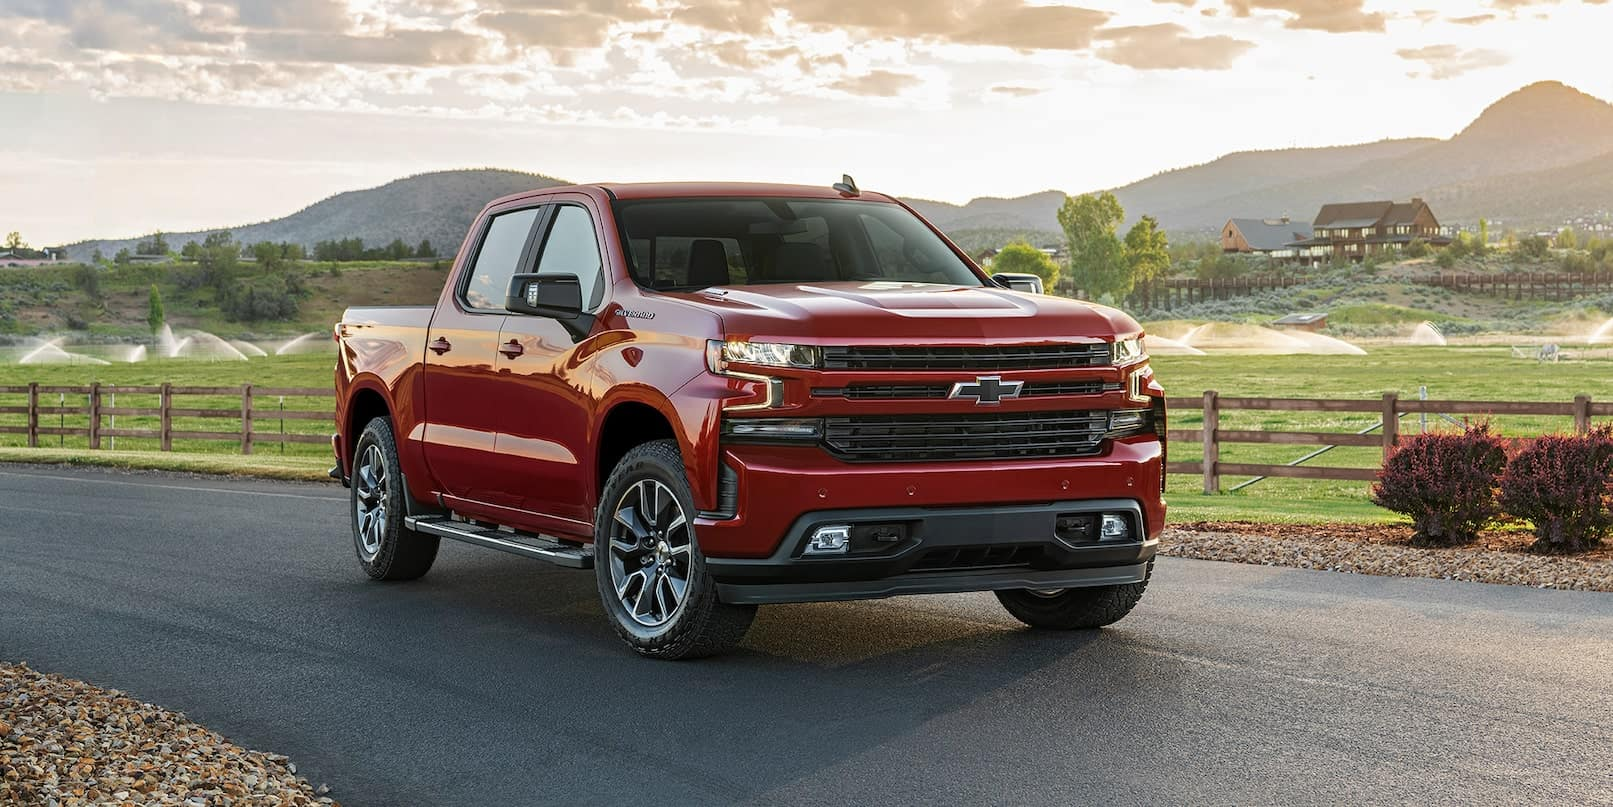 picture of chevrolet silverado 2021 red exterior for sale in Hooksett New Hampshire